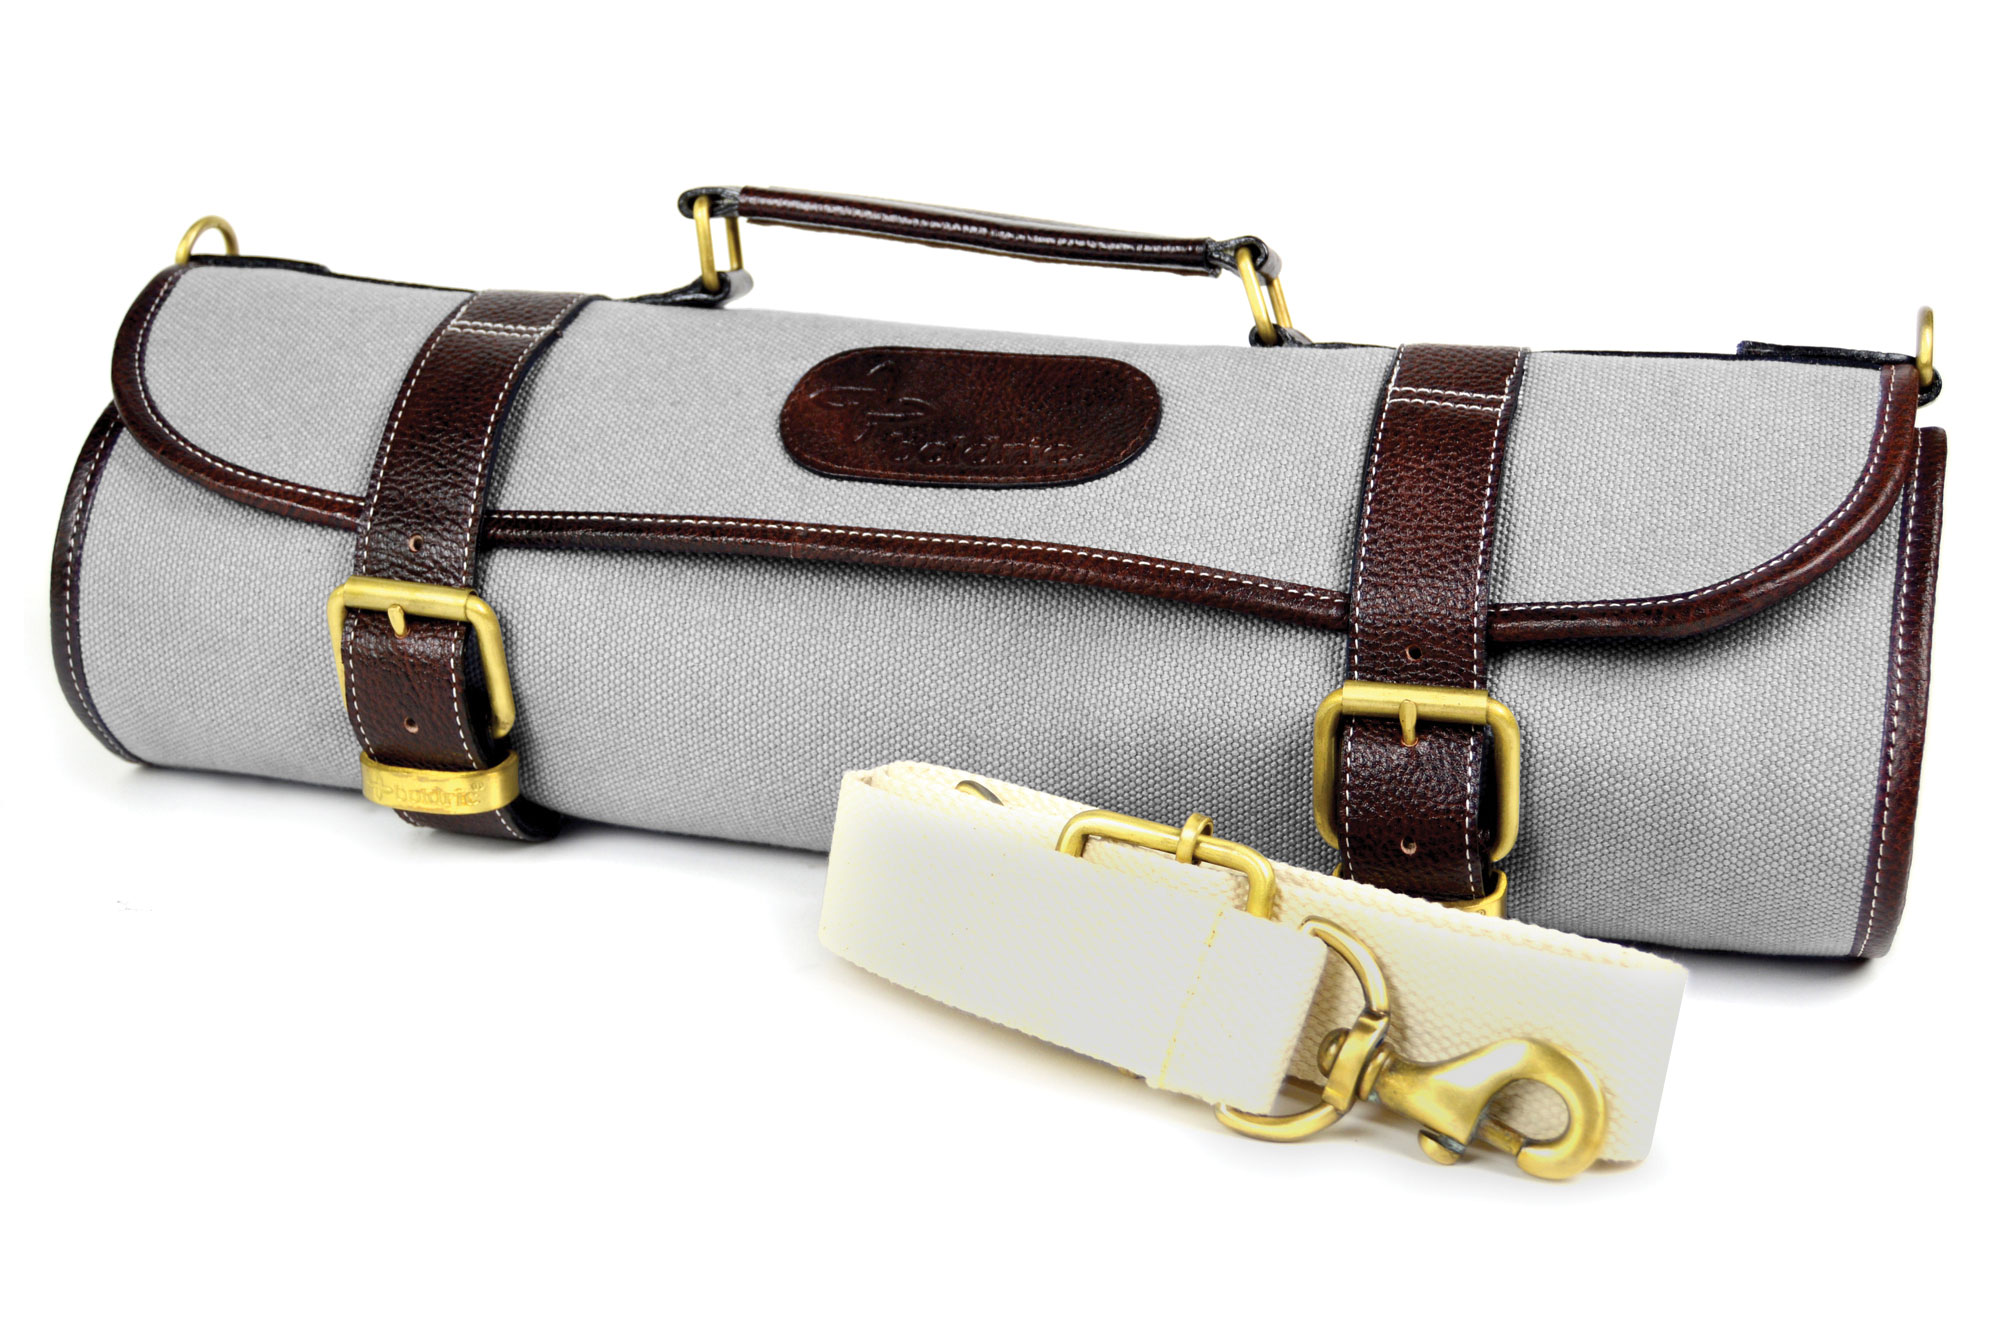 boldric canvas knife roll 9 pocket gray cutlery and more. Black Bedroom Furniture Sets. Home Design Ideas